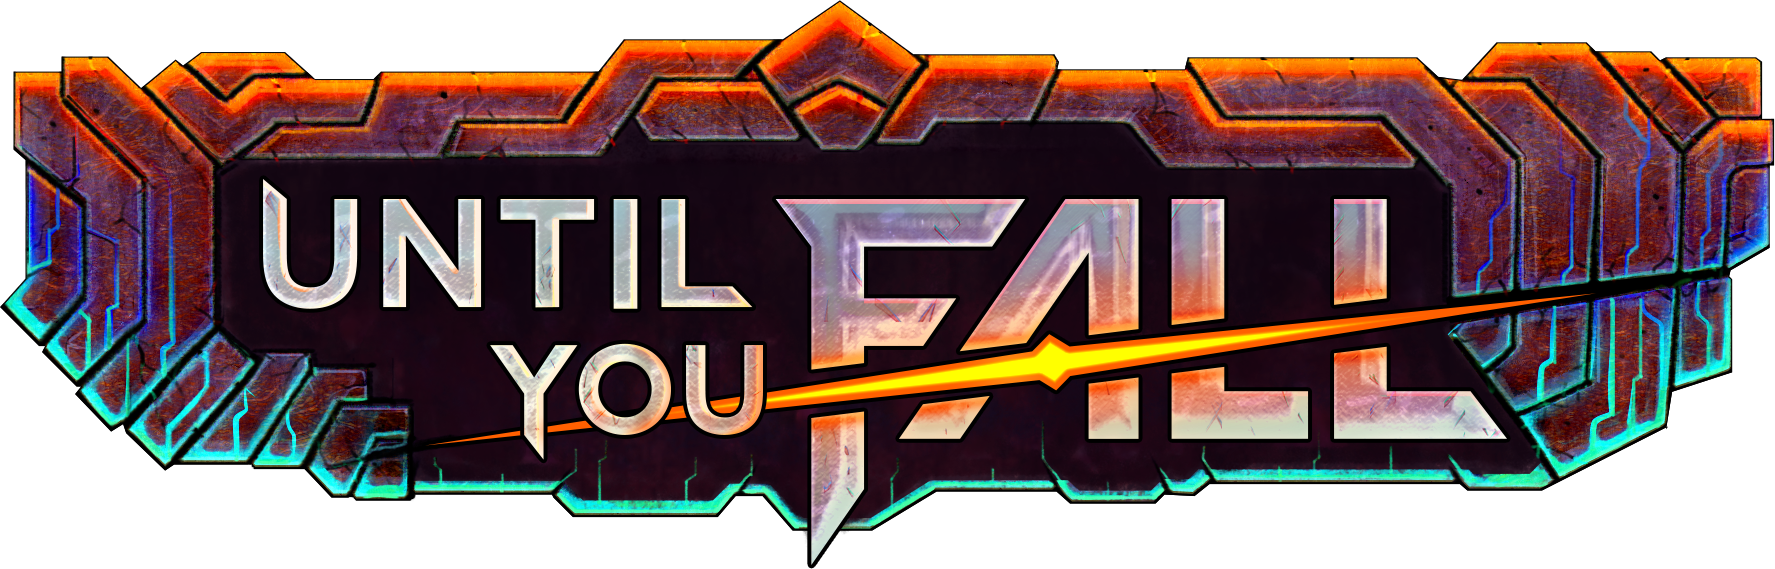 until you fall vr game knight